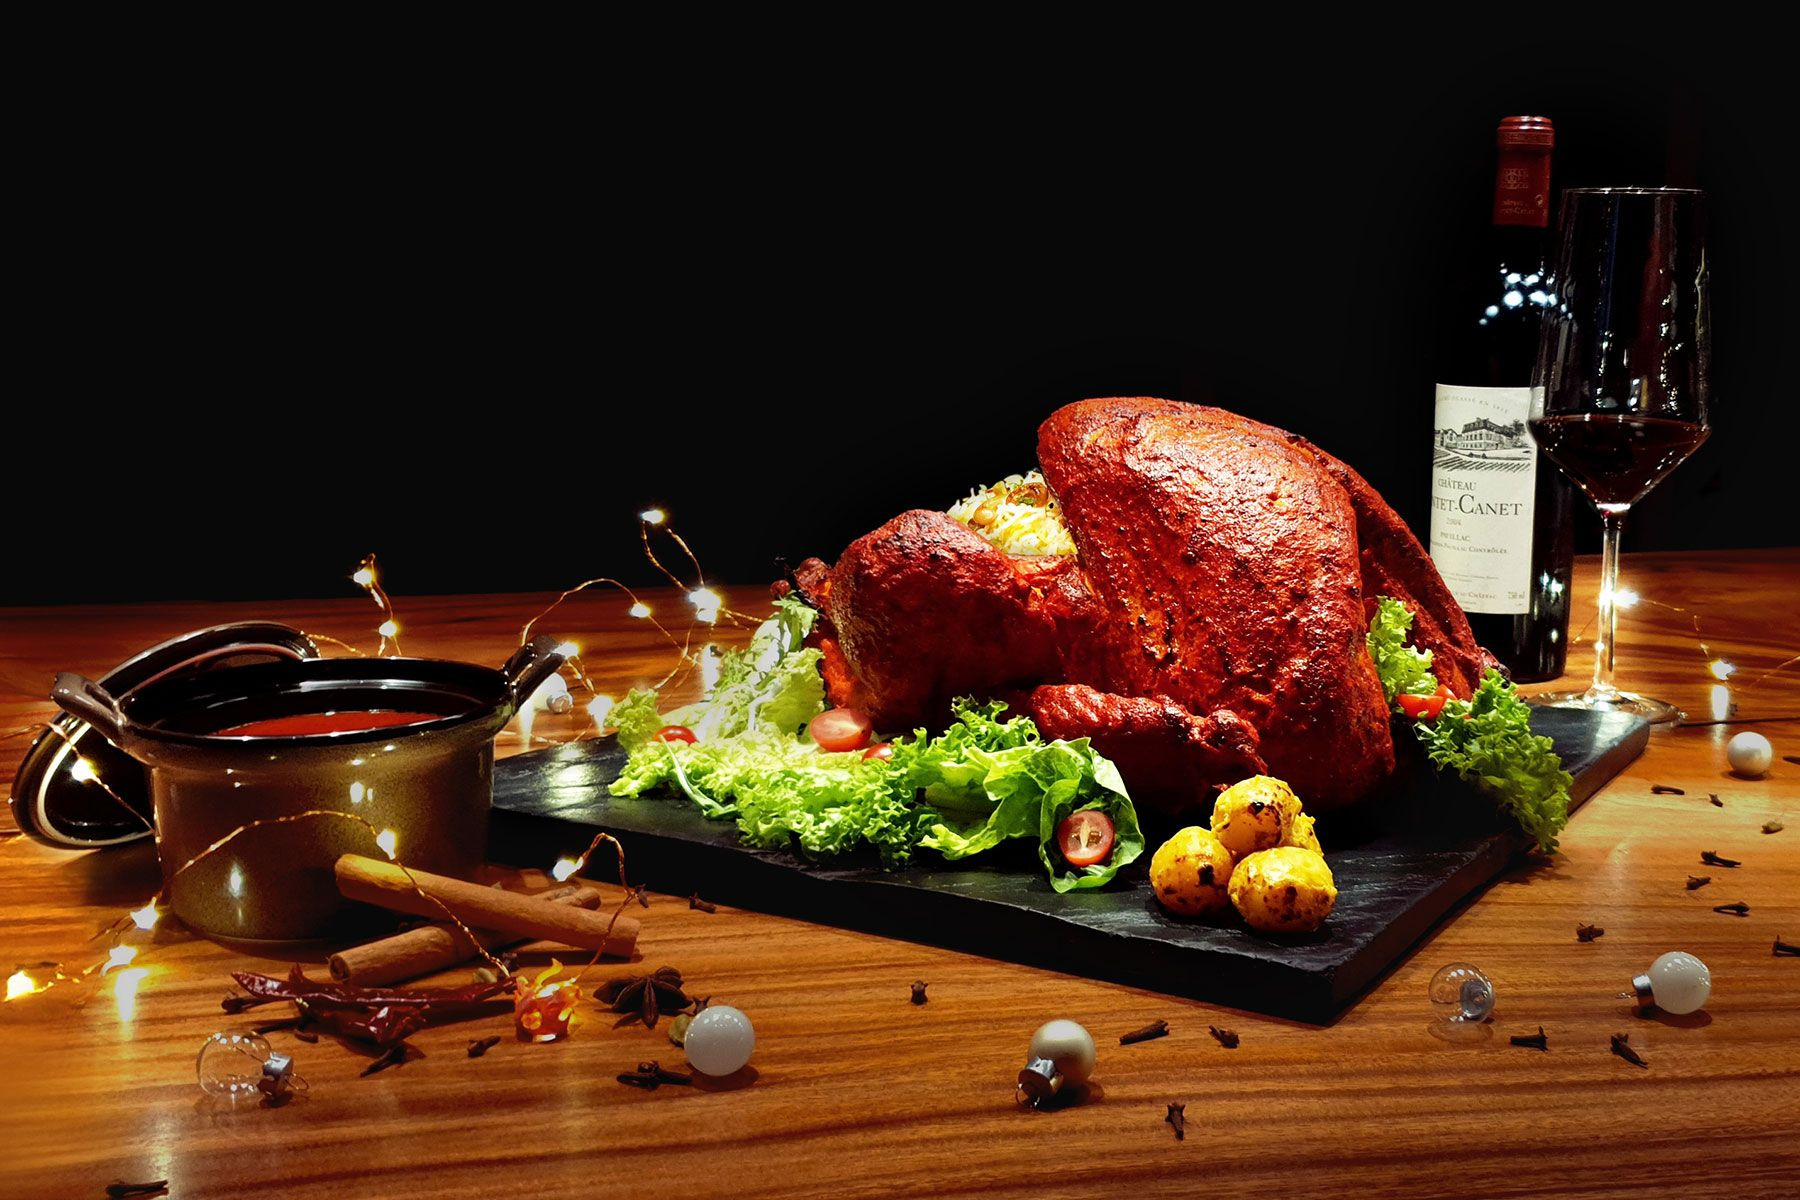 The Best Roast Turkeys In Singapore To Bring To Your Christmas Party In 2019